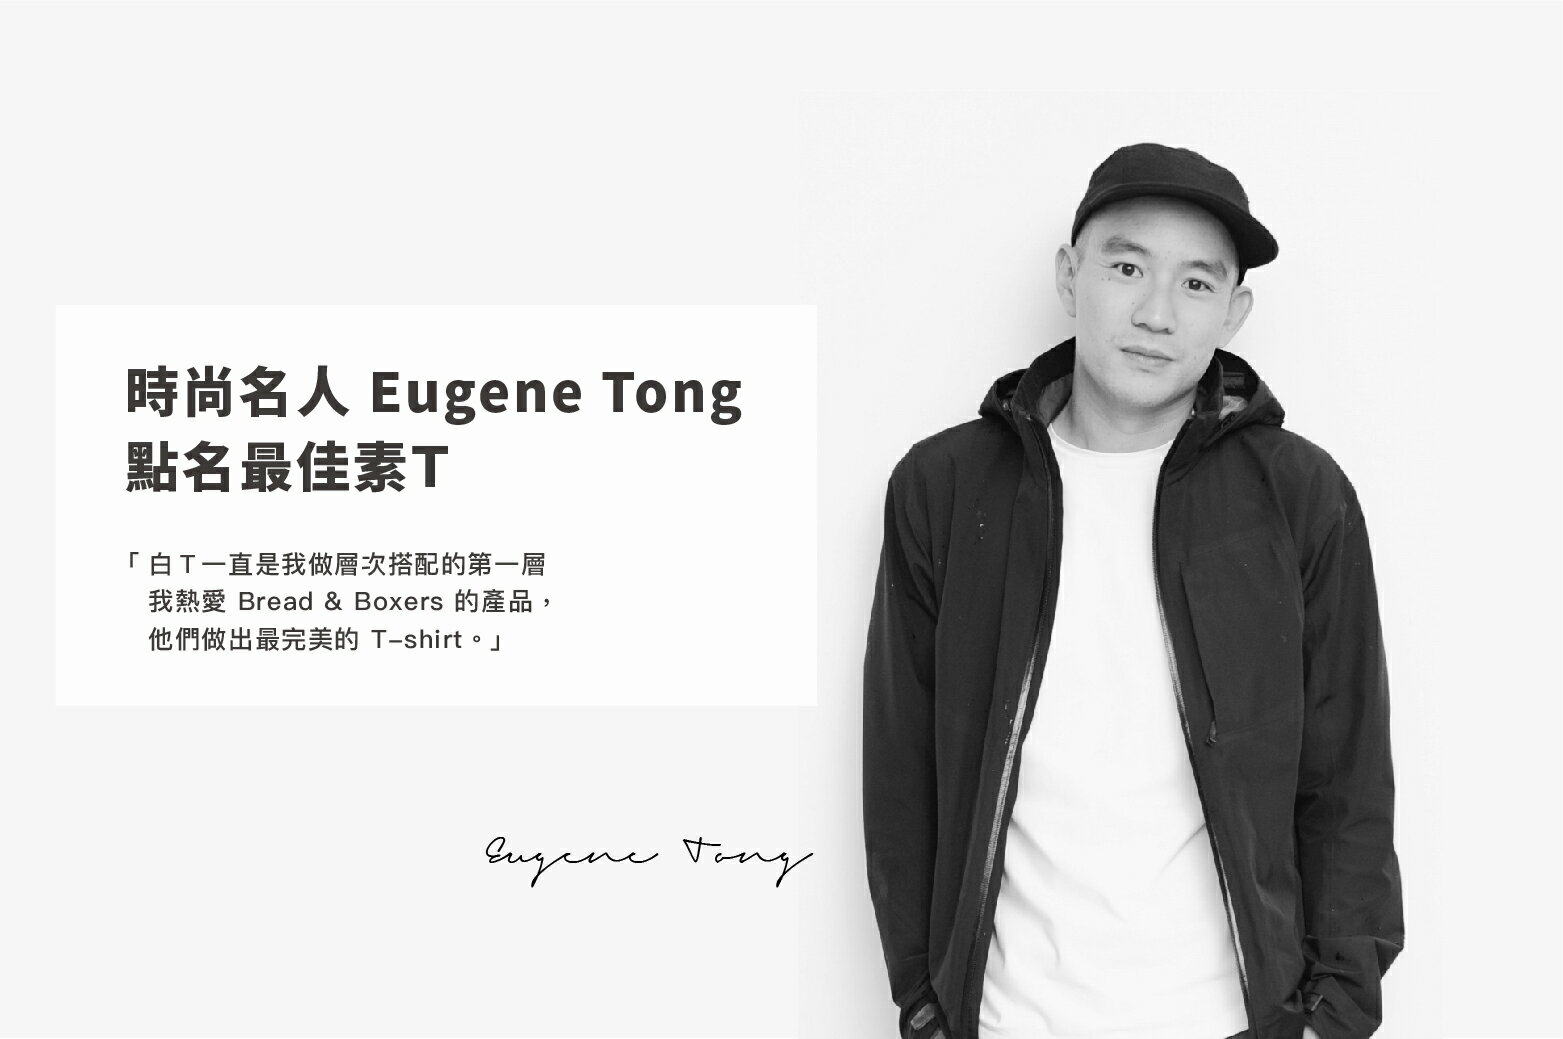 Bread & Boxers Crew Neck Relaxed長袖 北歐時尚素Tee Eugene Tong著用有機棉不收邊 6